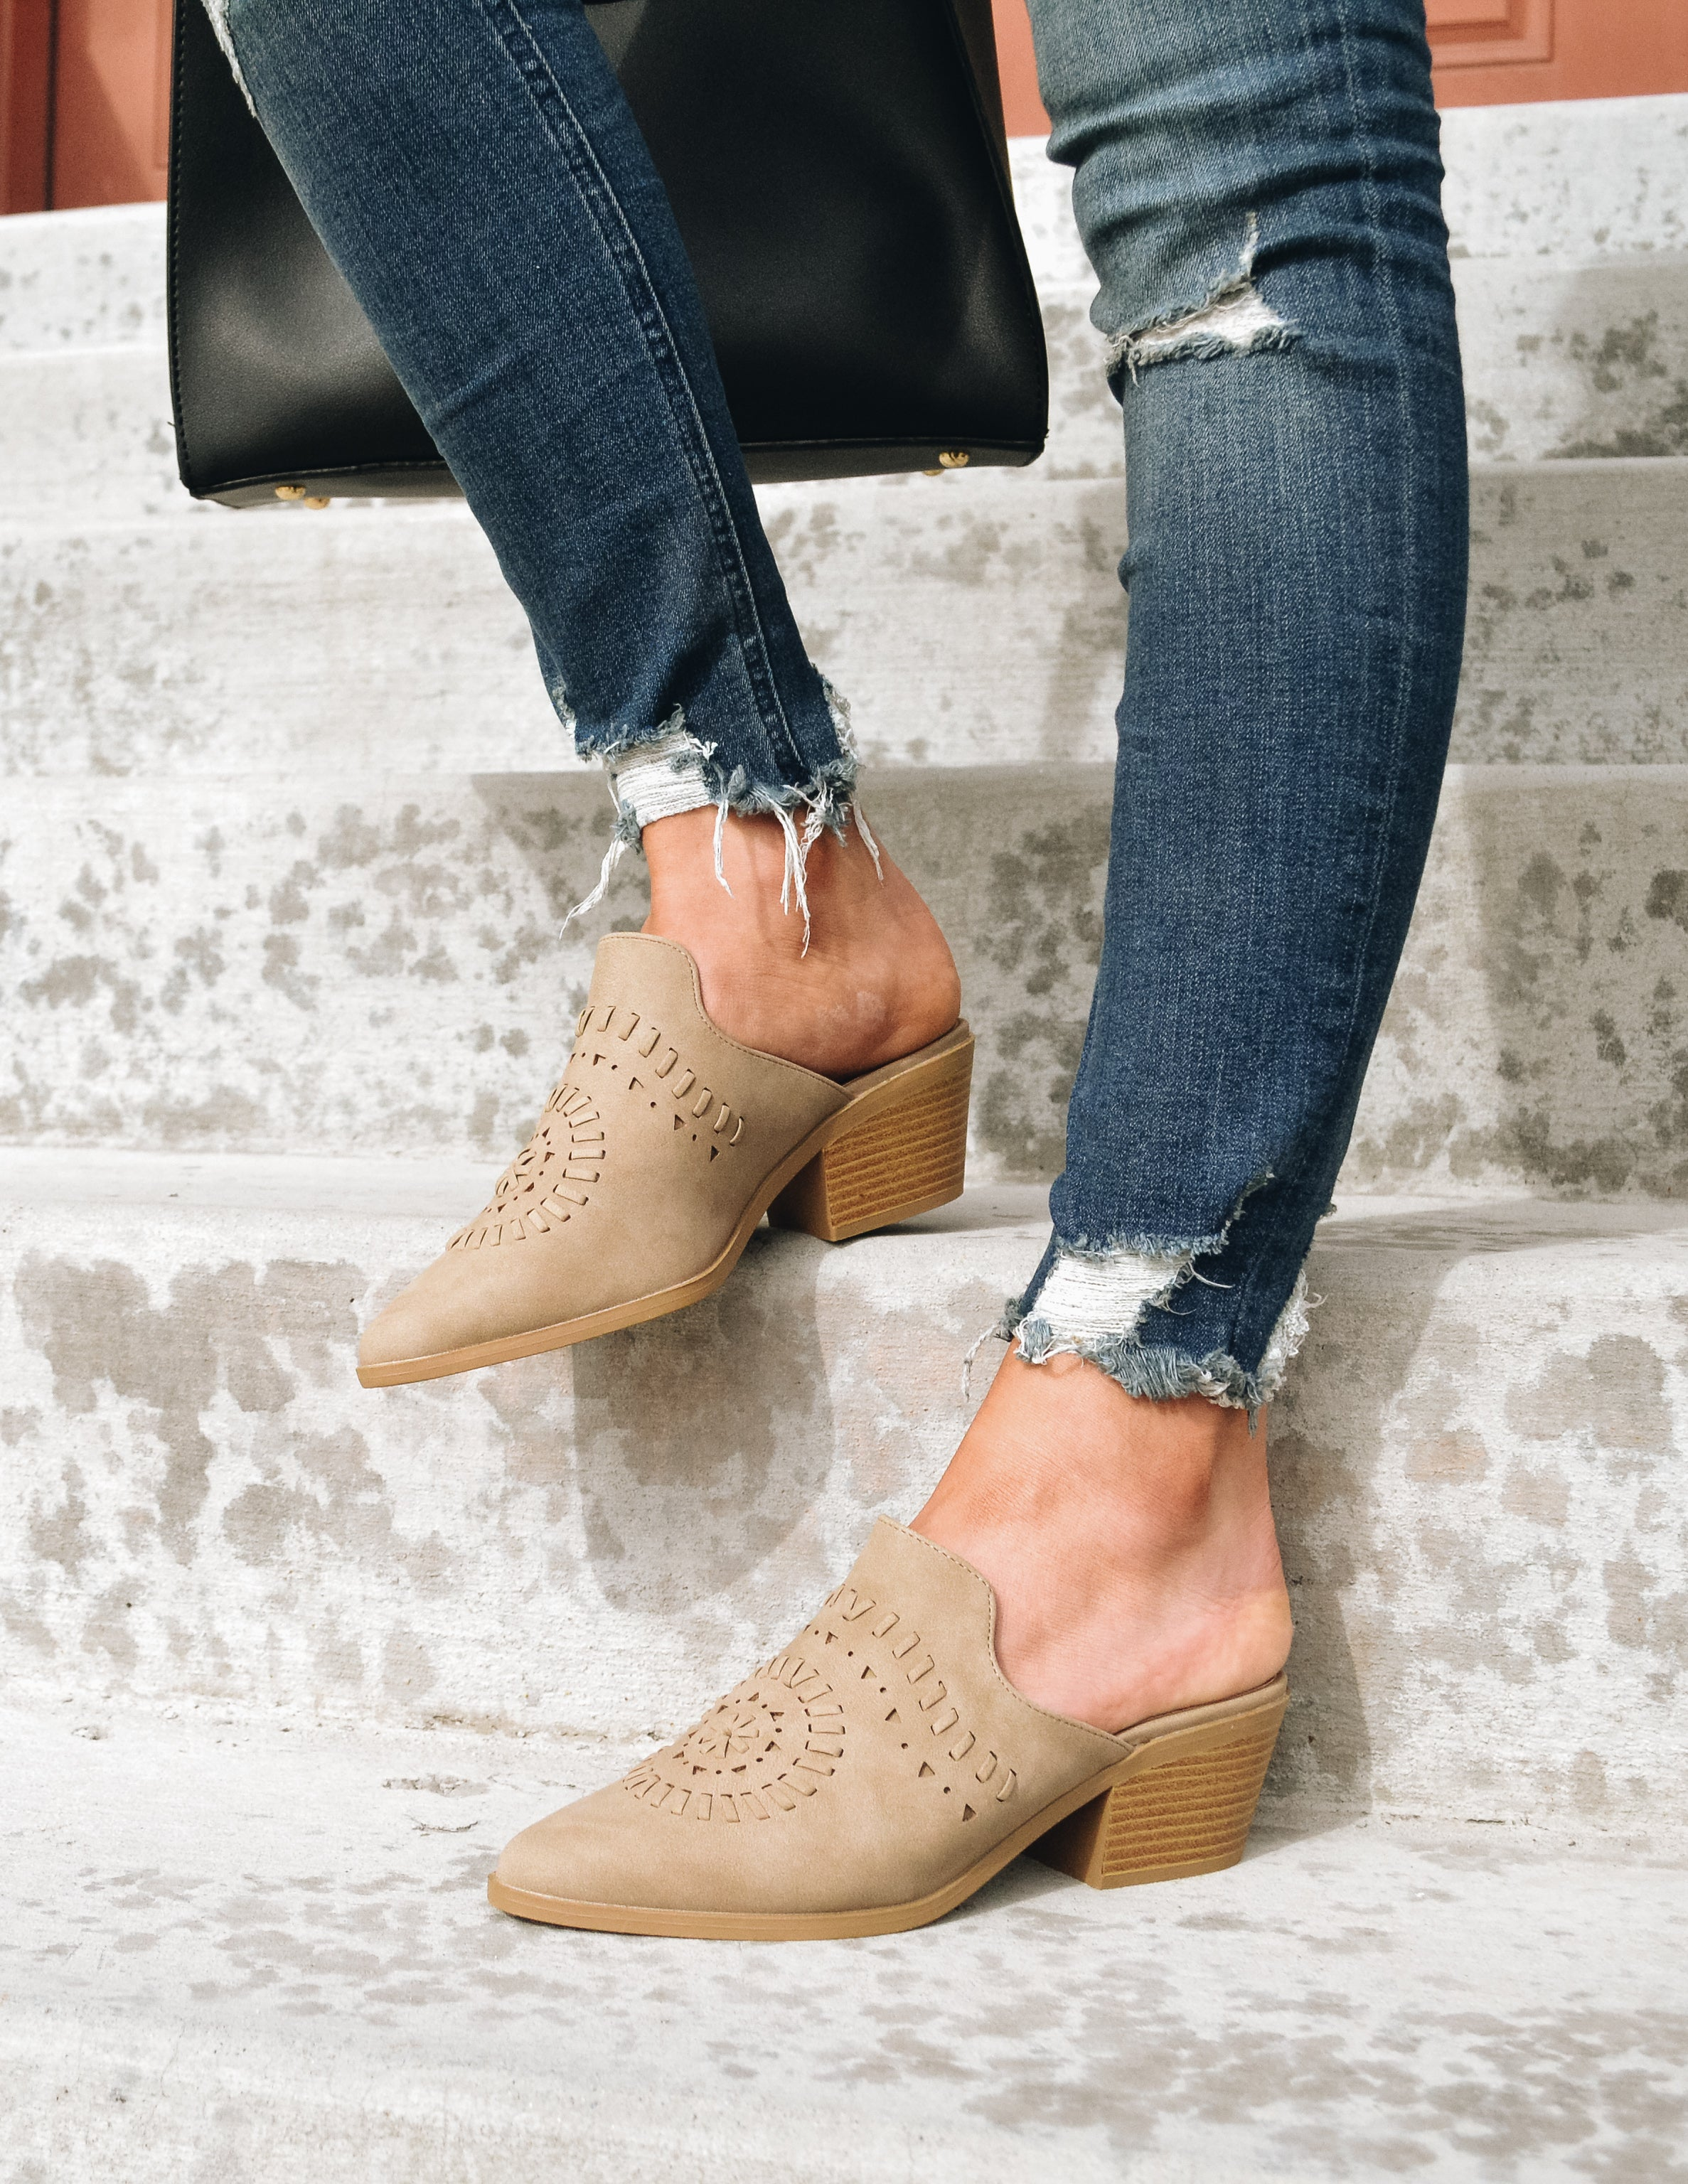 TAKE THE CAKE MULE - Warm Taupe - Elle Bleu Shoe Boutique